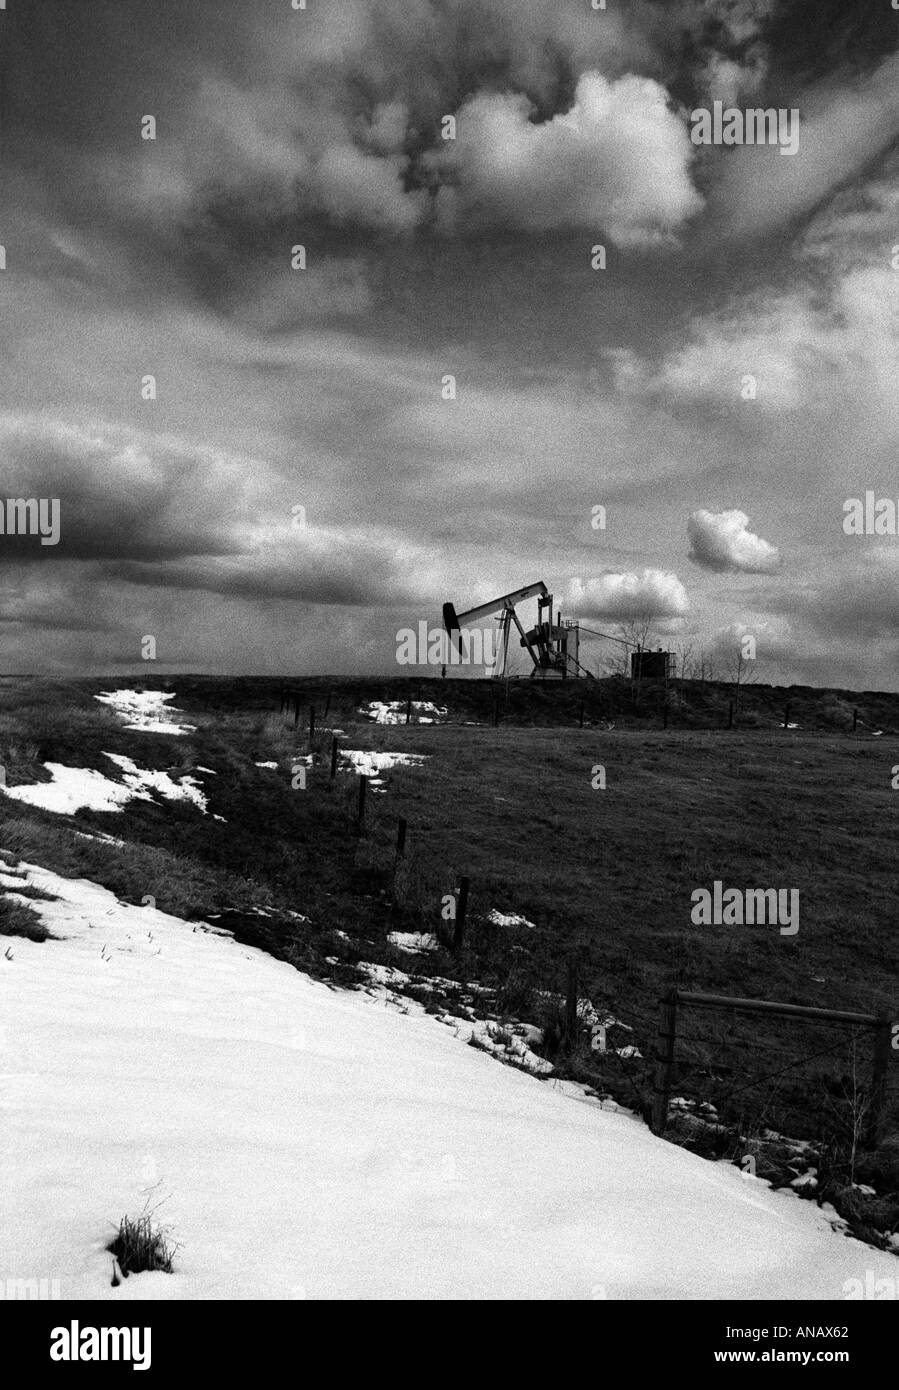 Canada. Working Oil Donkey in a snowy landscape - Stock Image